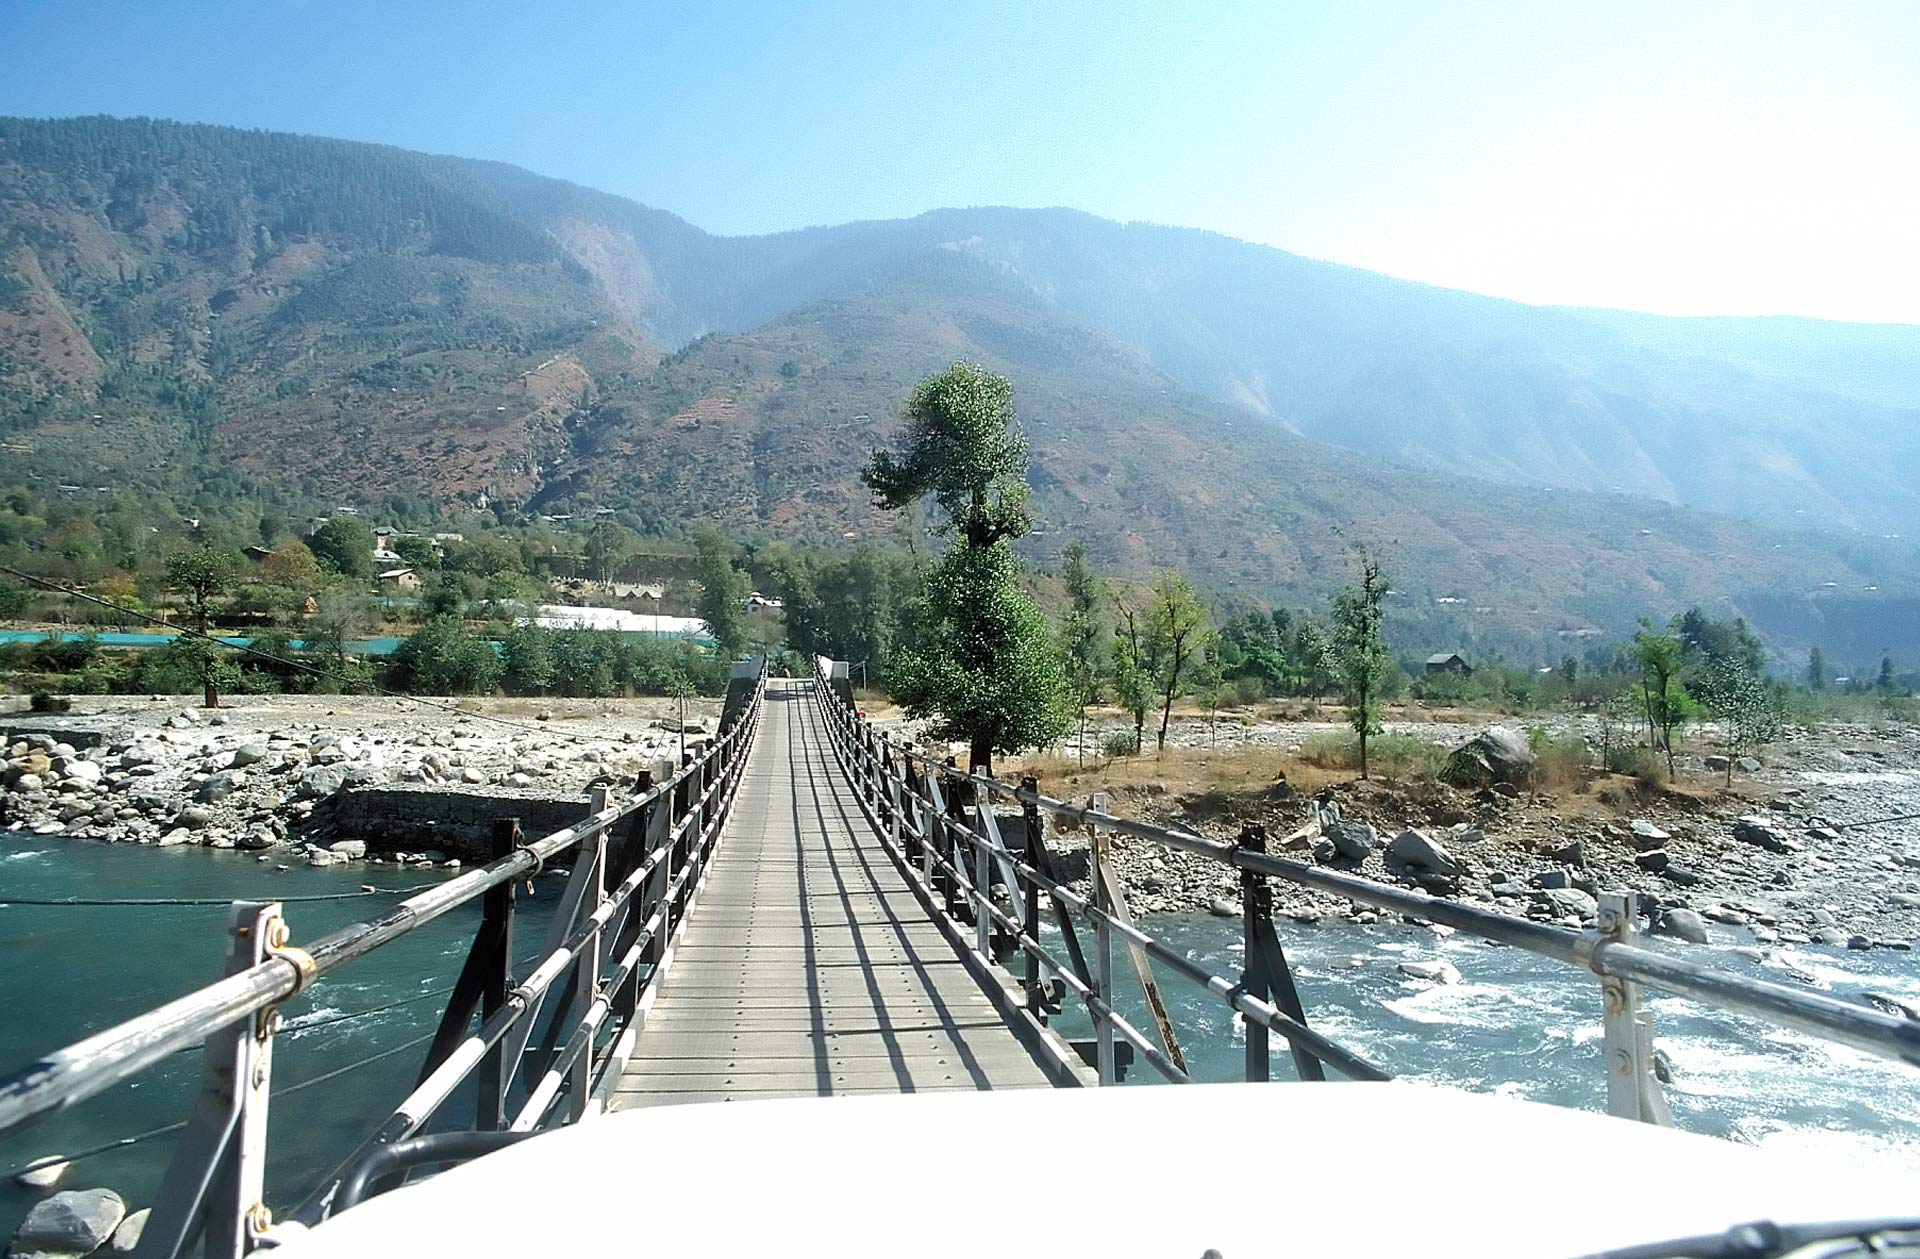 Suspension bridge over the Beas River, Kullu, Himachal Pradesh, India